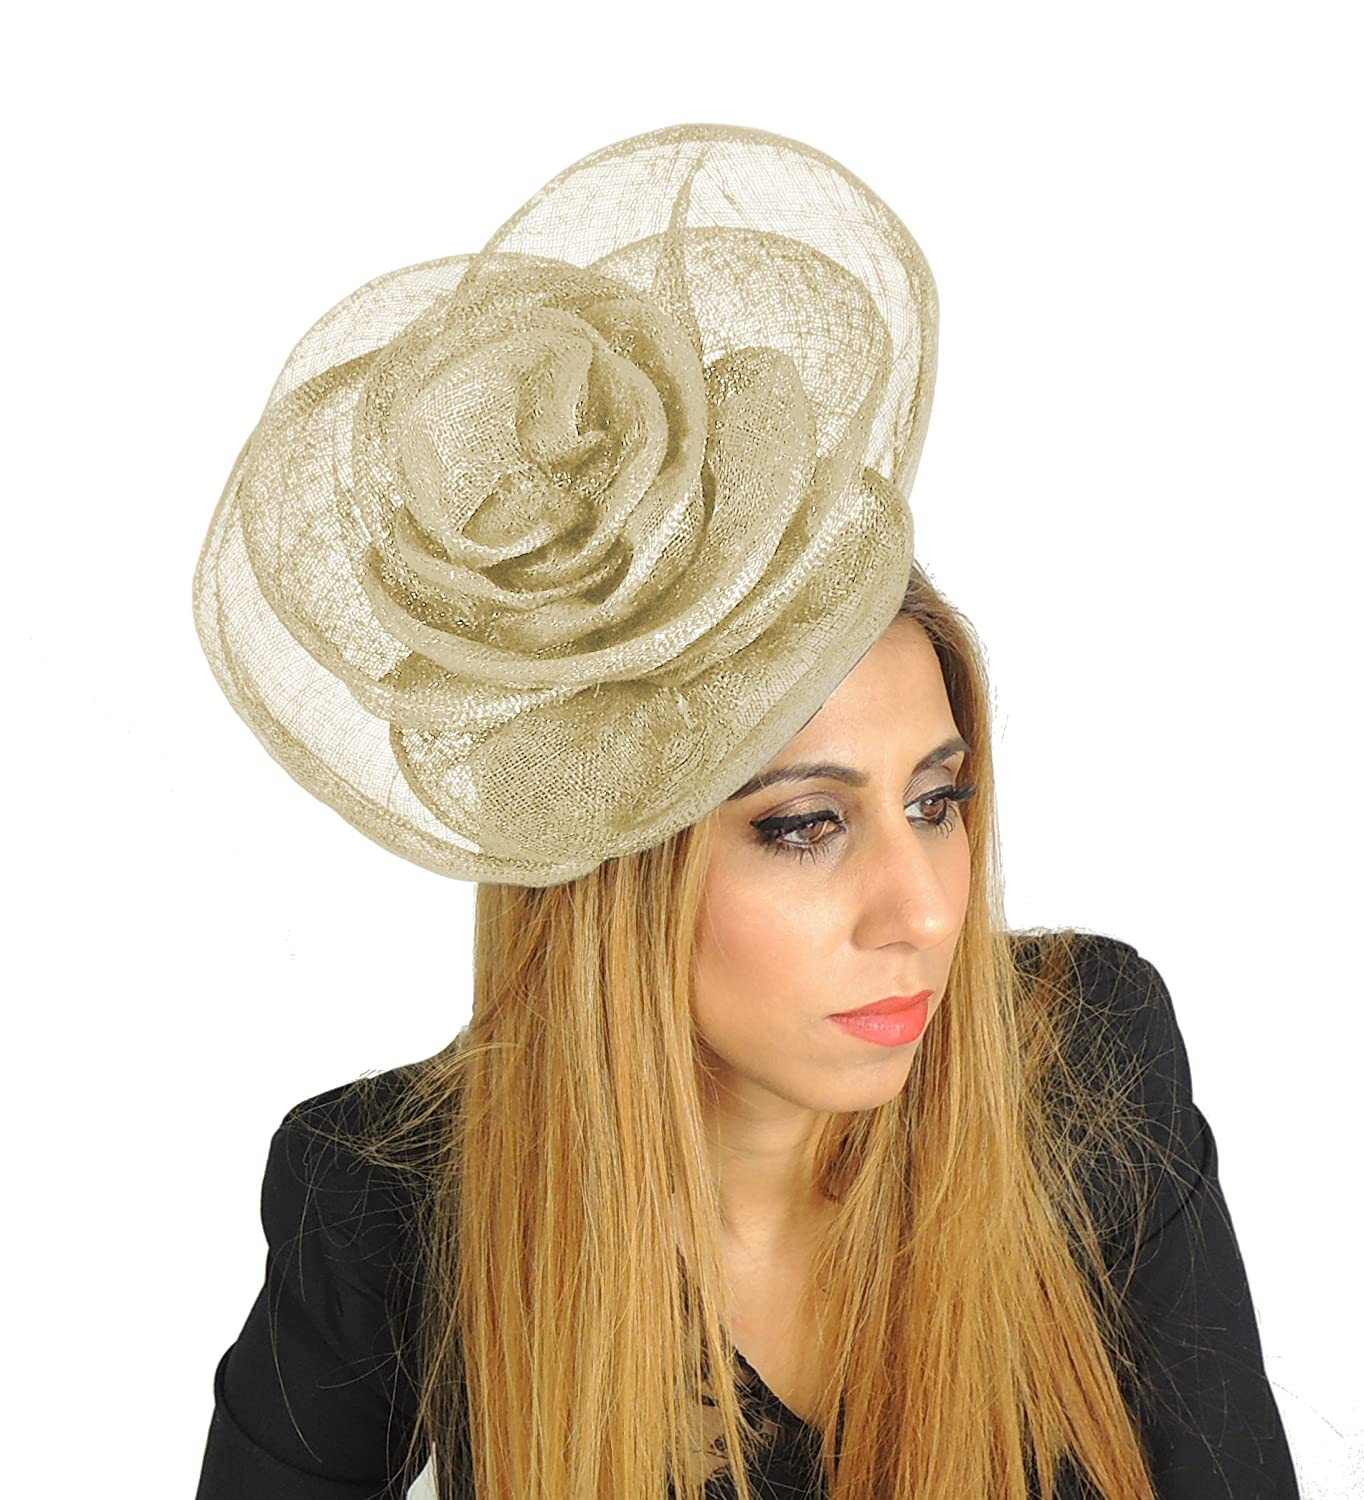 49499ccd1fdb3 Large 10 Inch Cuban Ascot Kentucky Derby Wedding Rose Fascinator Hat Alice  Band - With Headband Aubergine at Amazon Women s Clothing store  Fashion ...